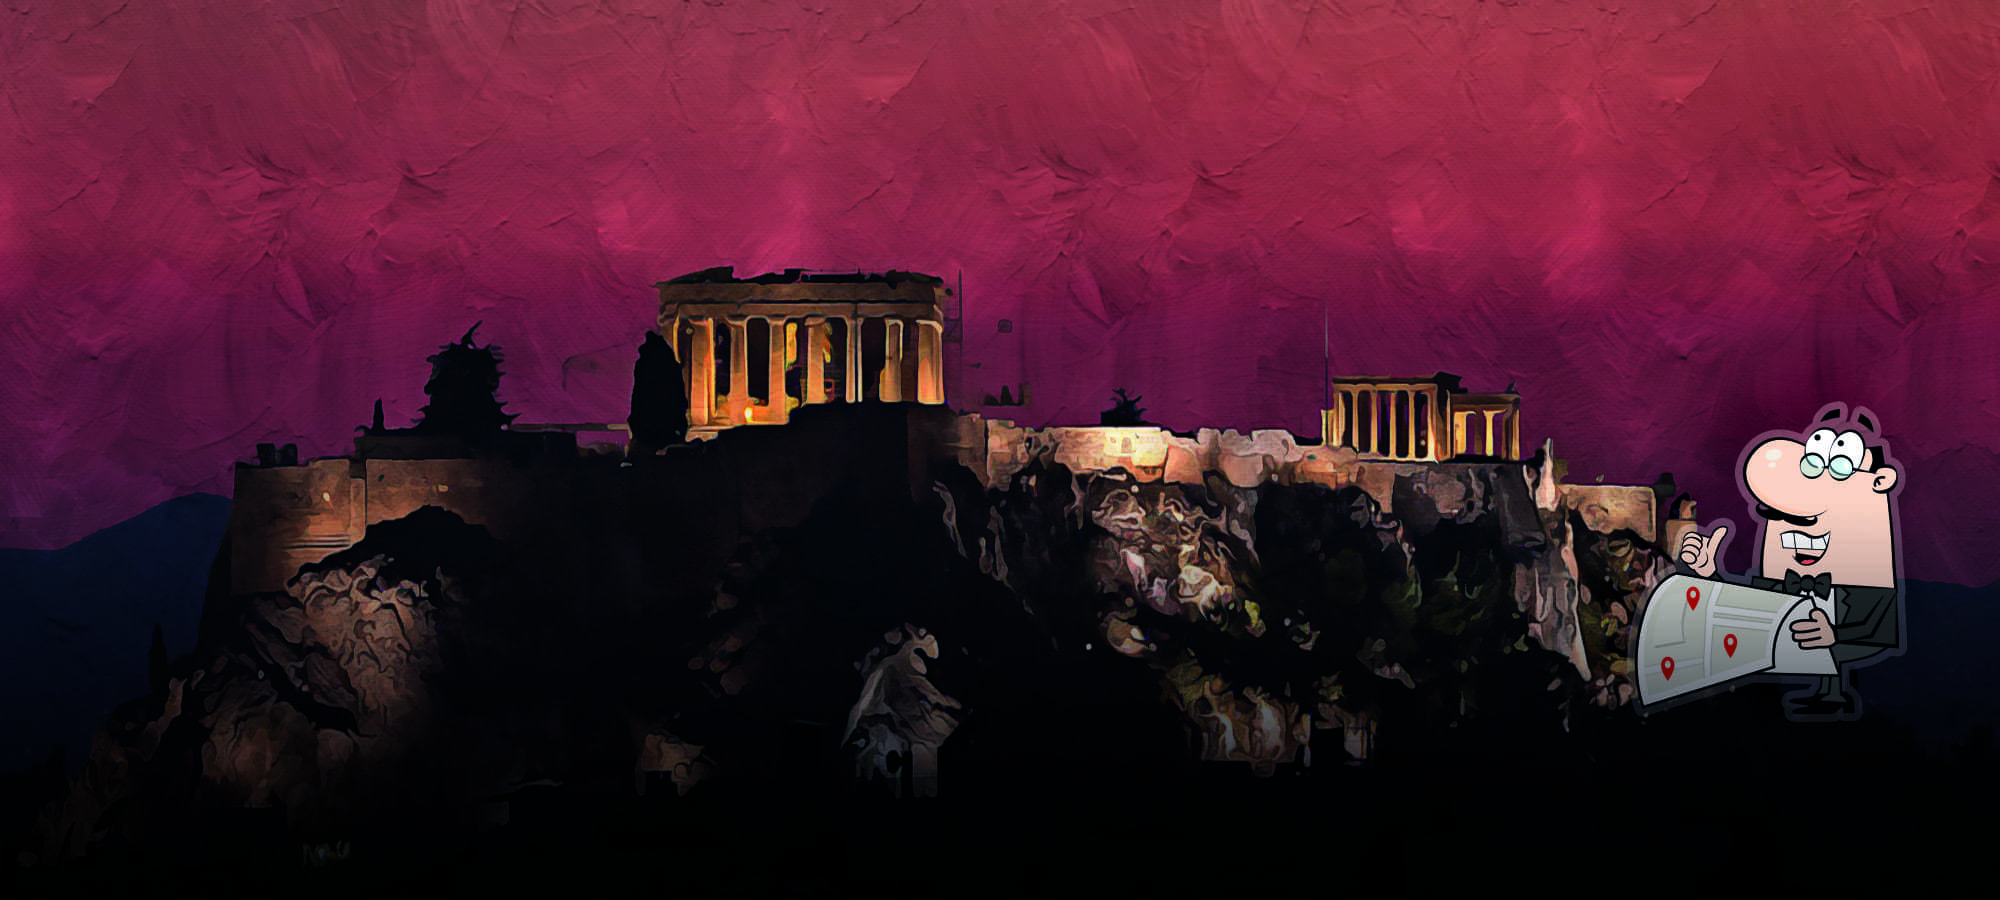 Athens: ancient city with tasty food